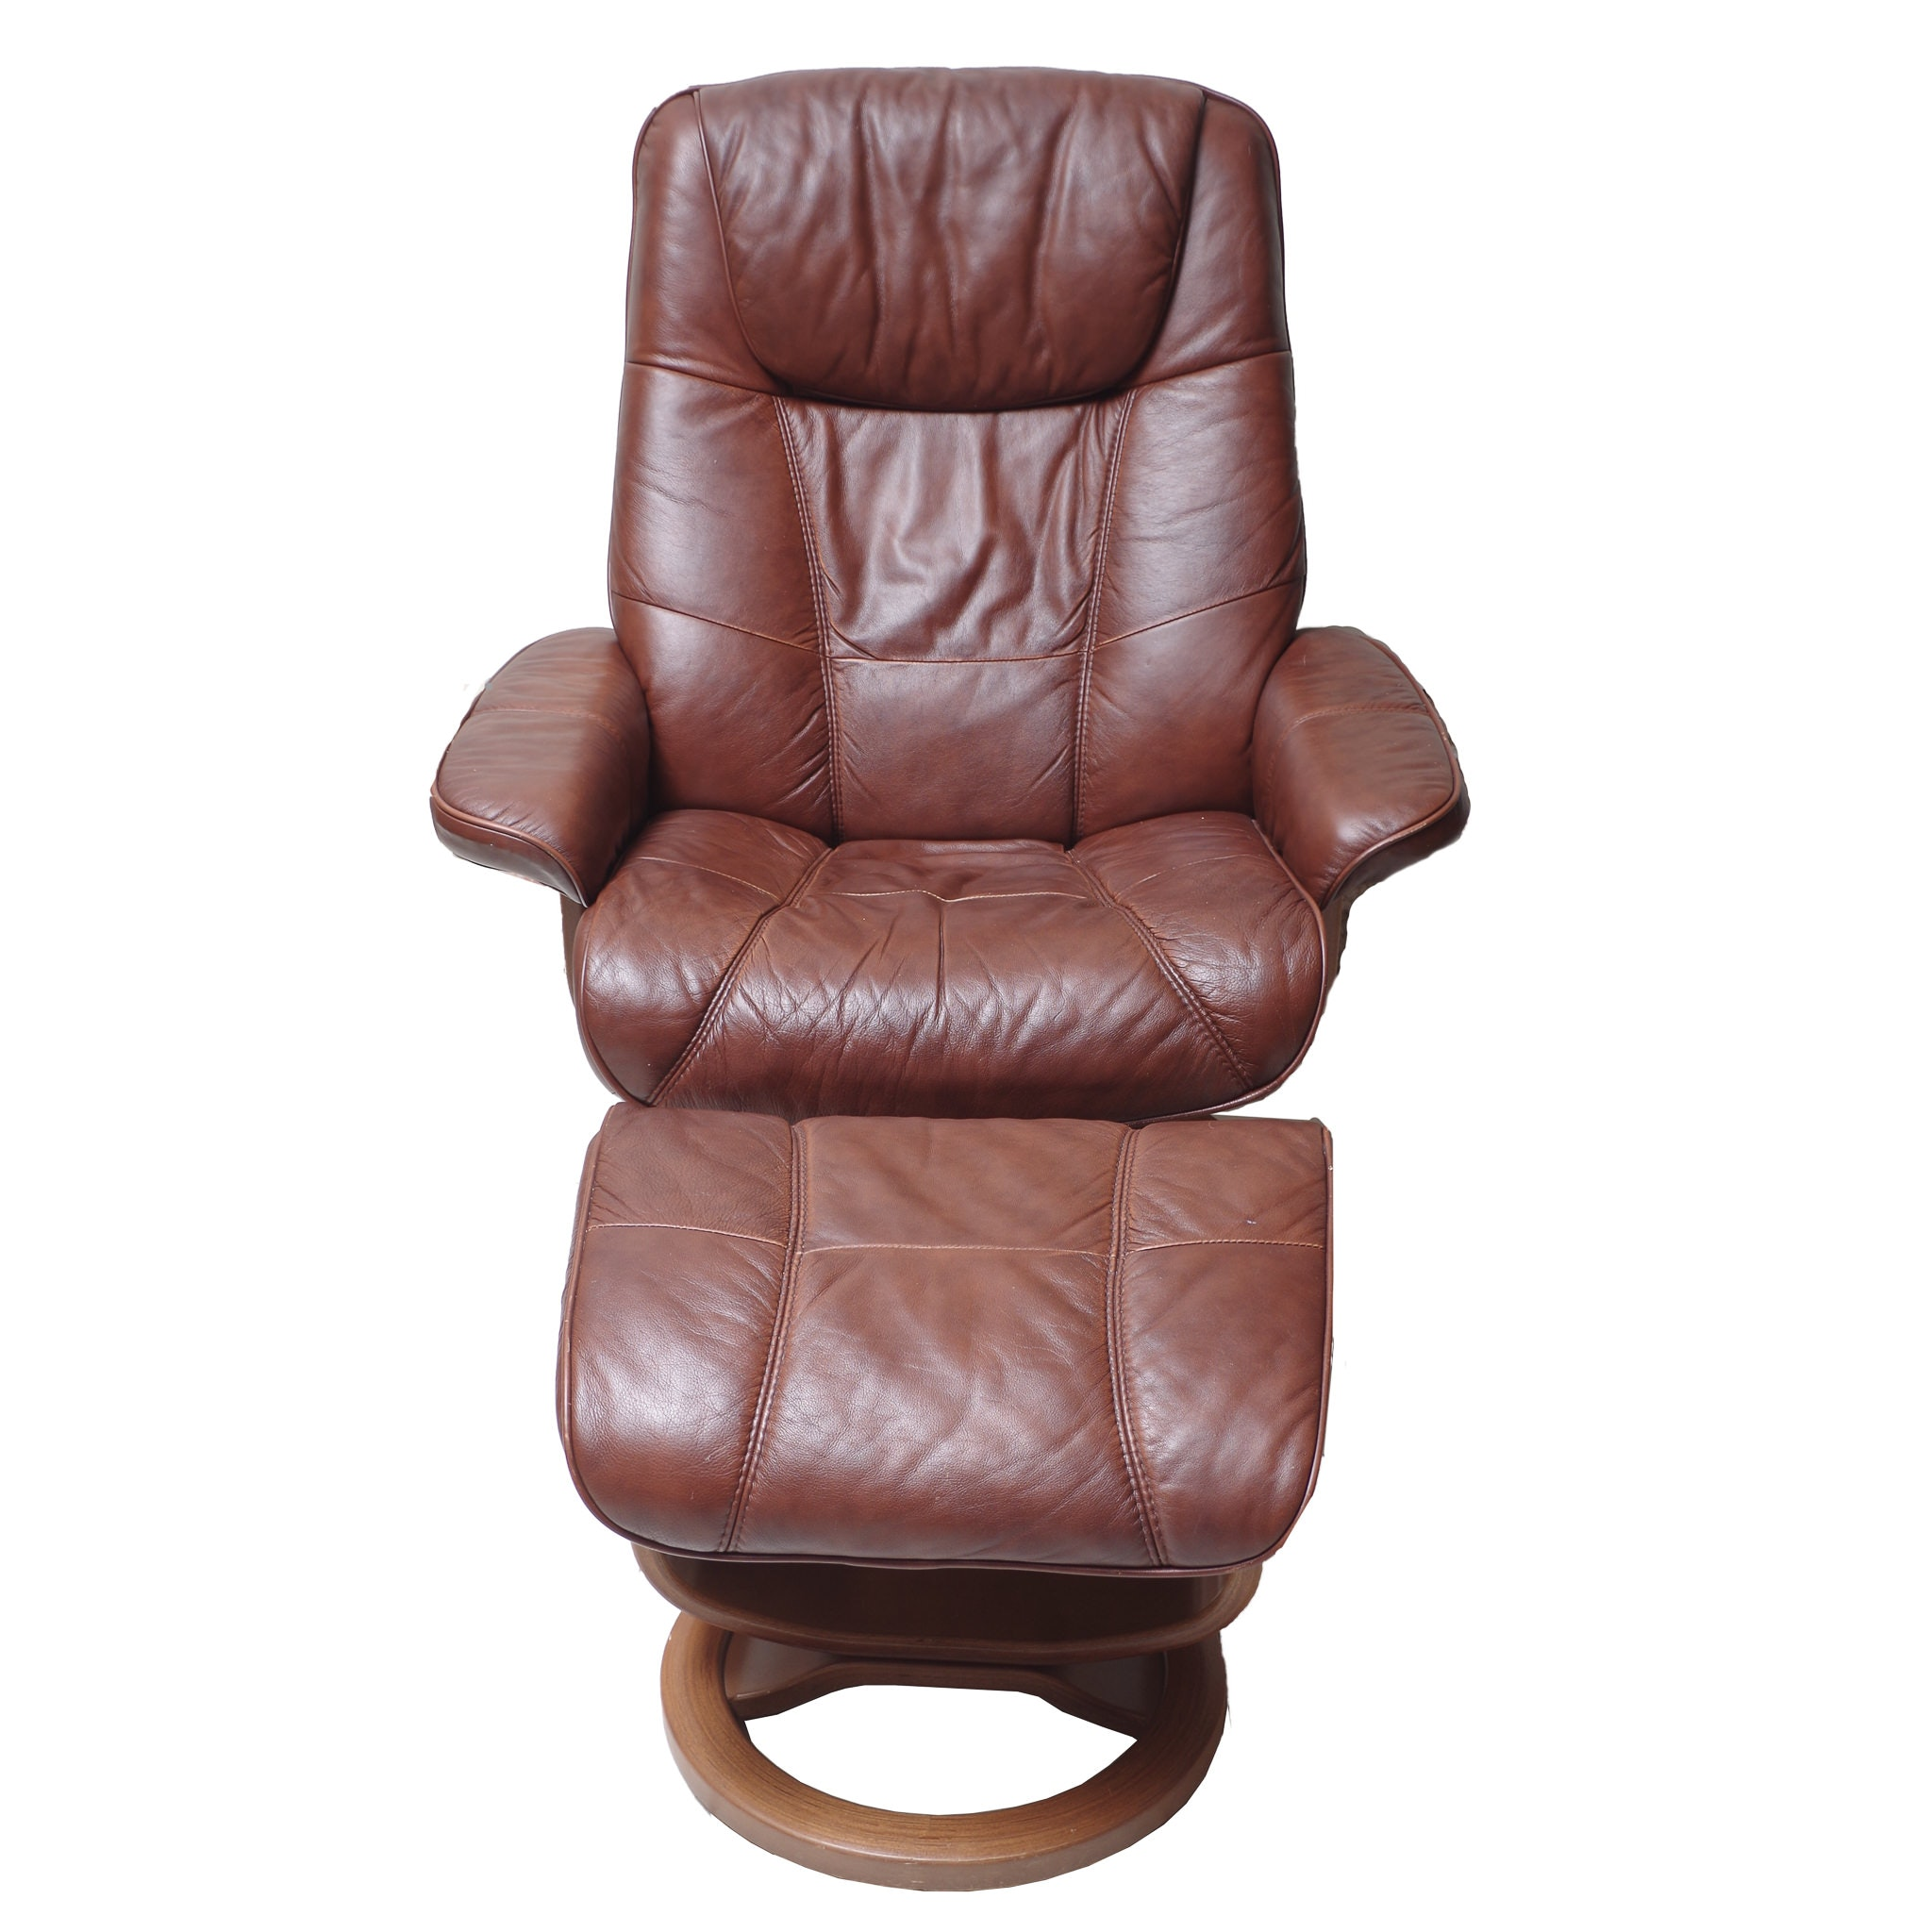 Ekornes Stressless Style Chair and Ottoman